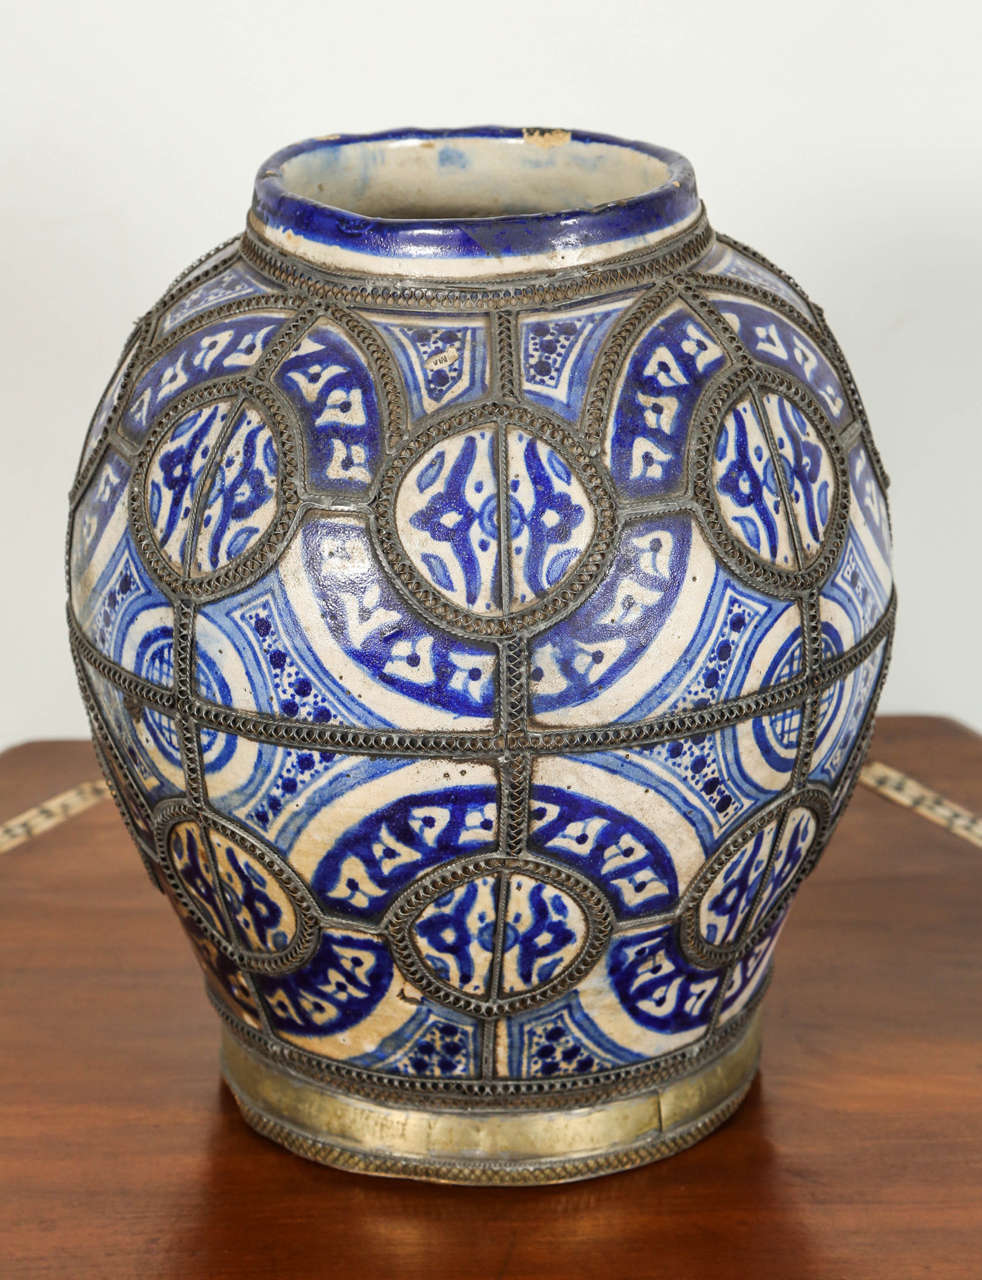 19th Century Antique Moroccan Blue and White Ceramic Vase from Fez For Sale